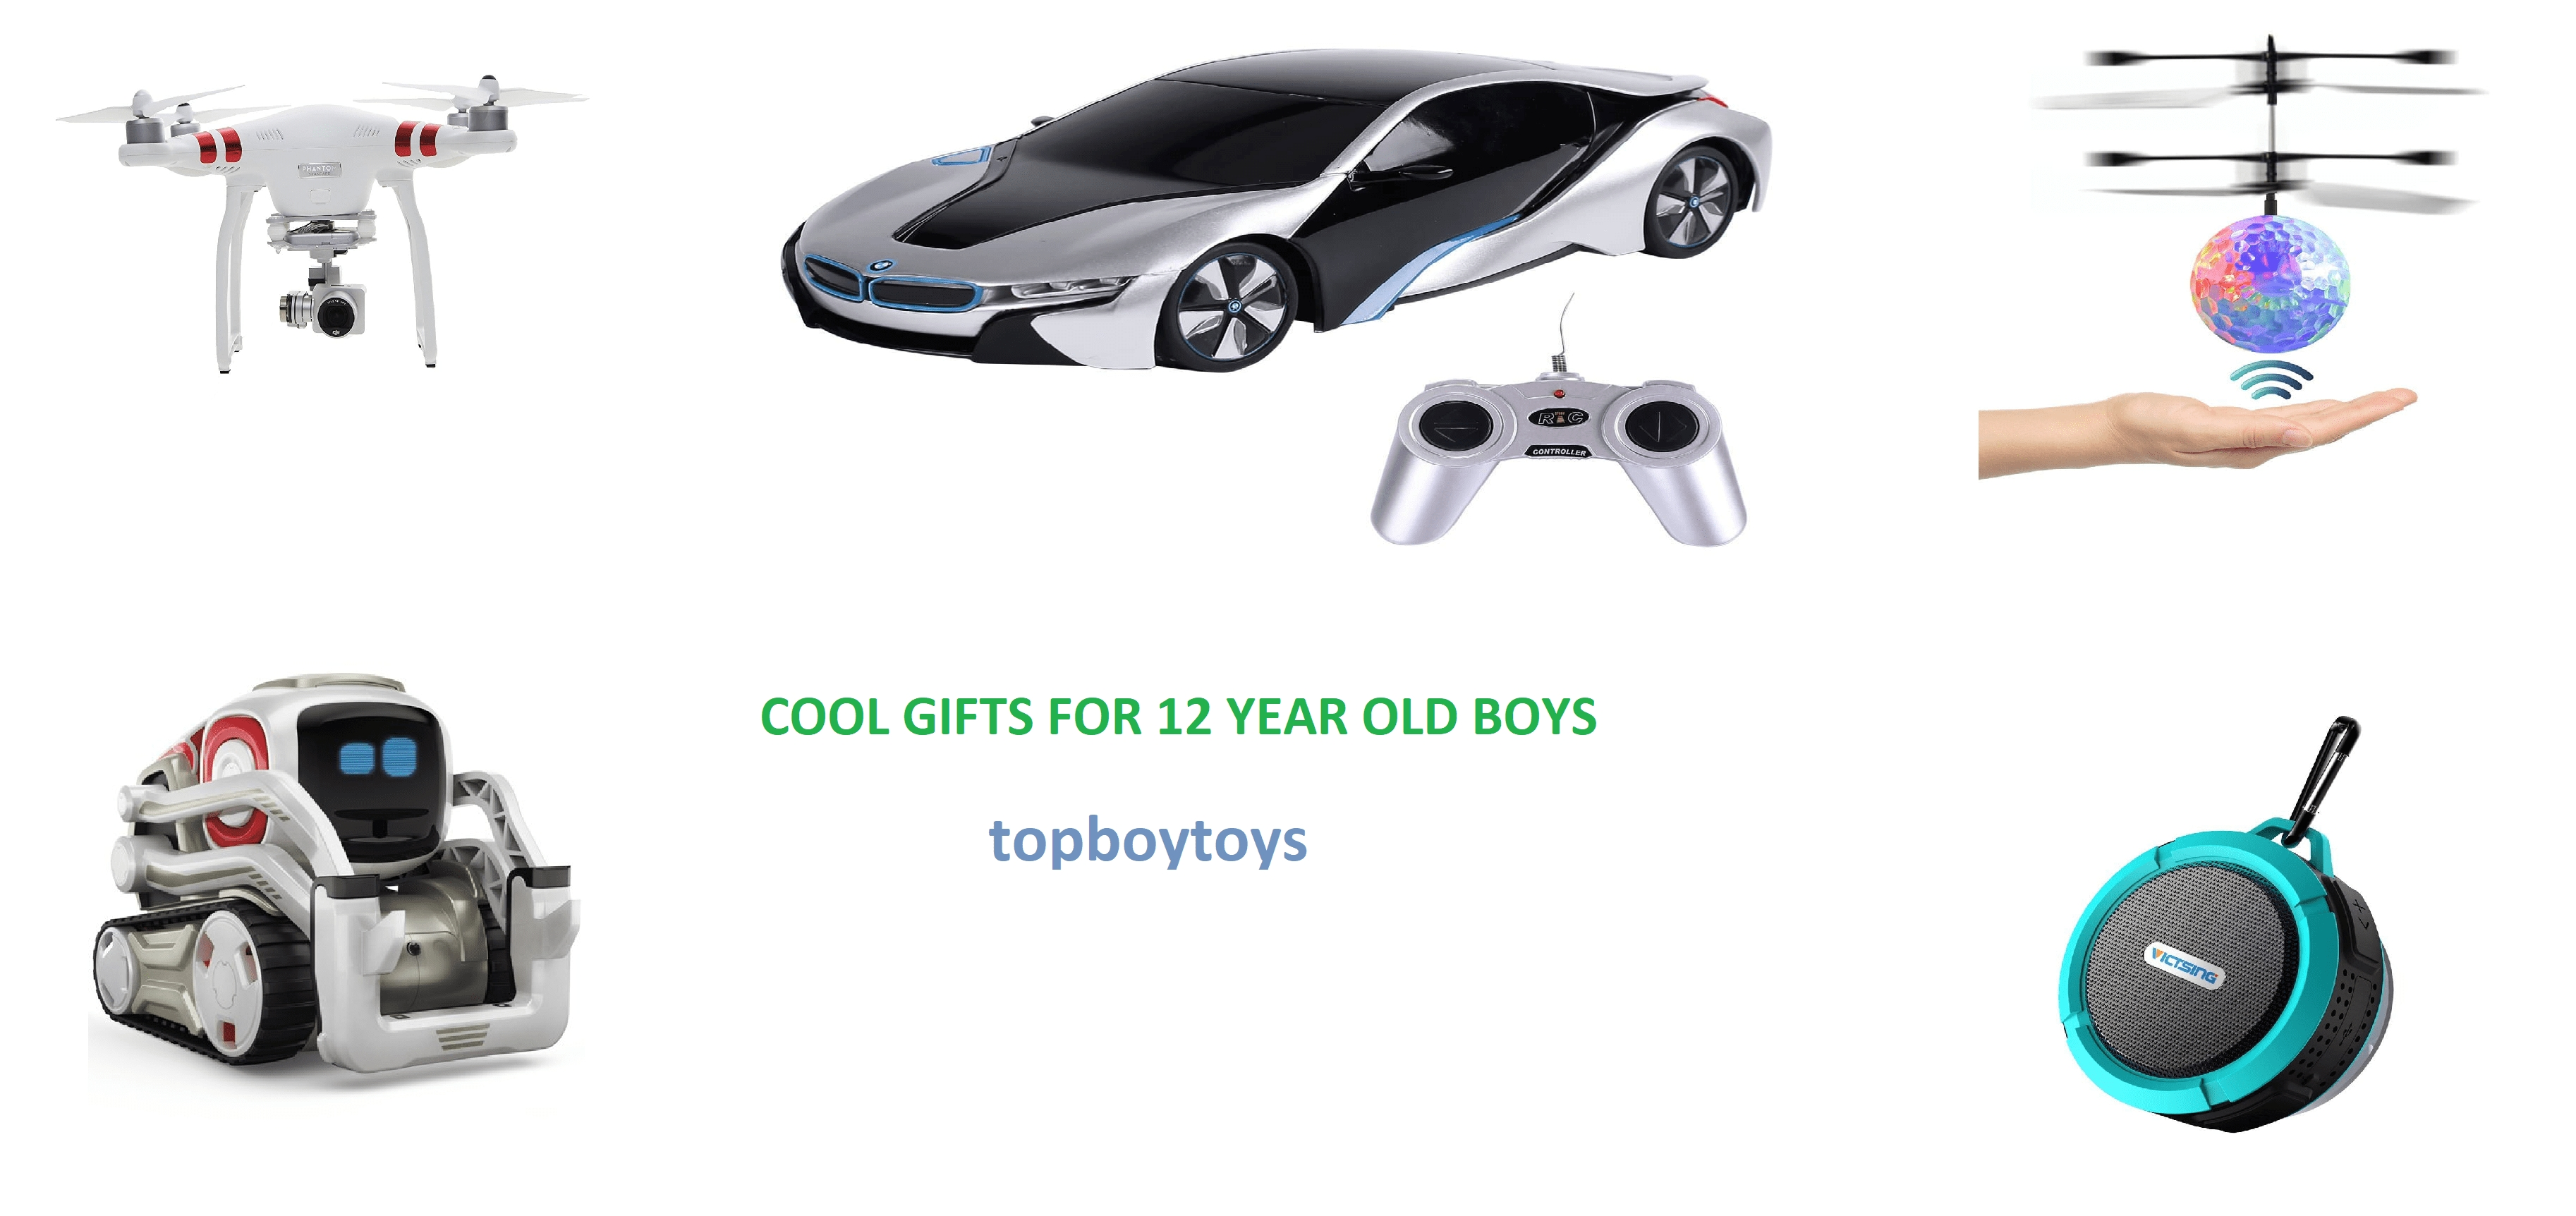 10 Wonderful Gift Ideas For A 12 Year Old Boy which is best cool gifts for 12 year old boys 2017 18 usa